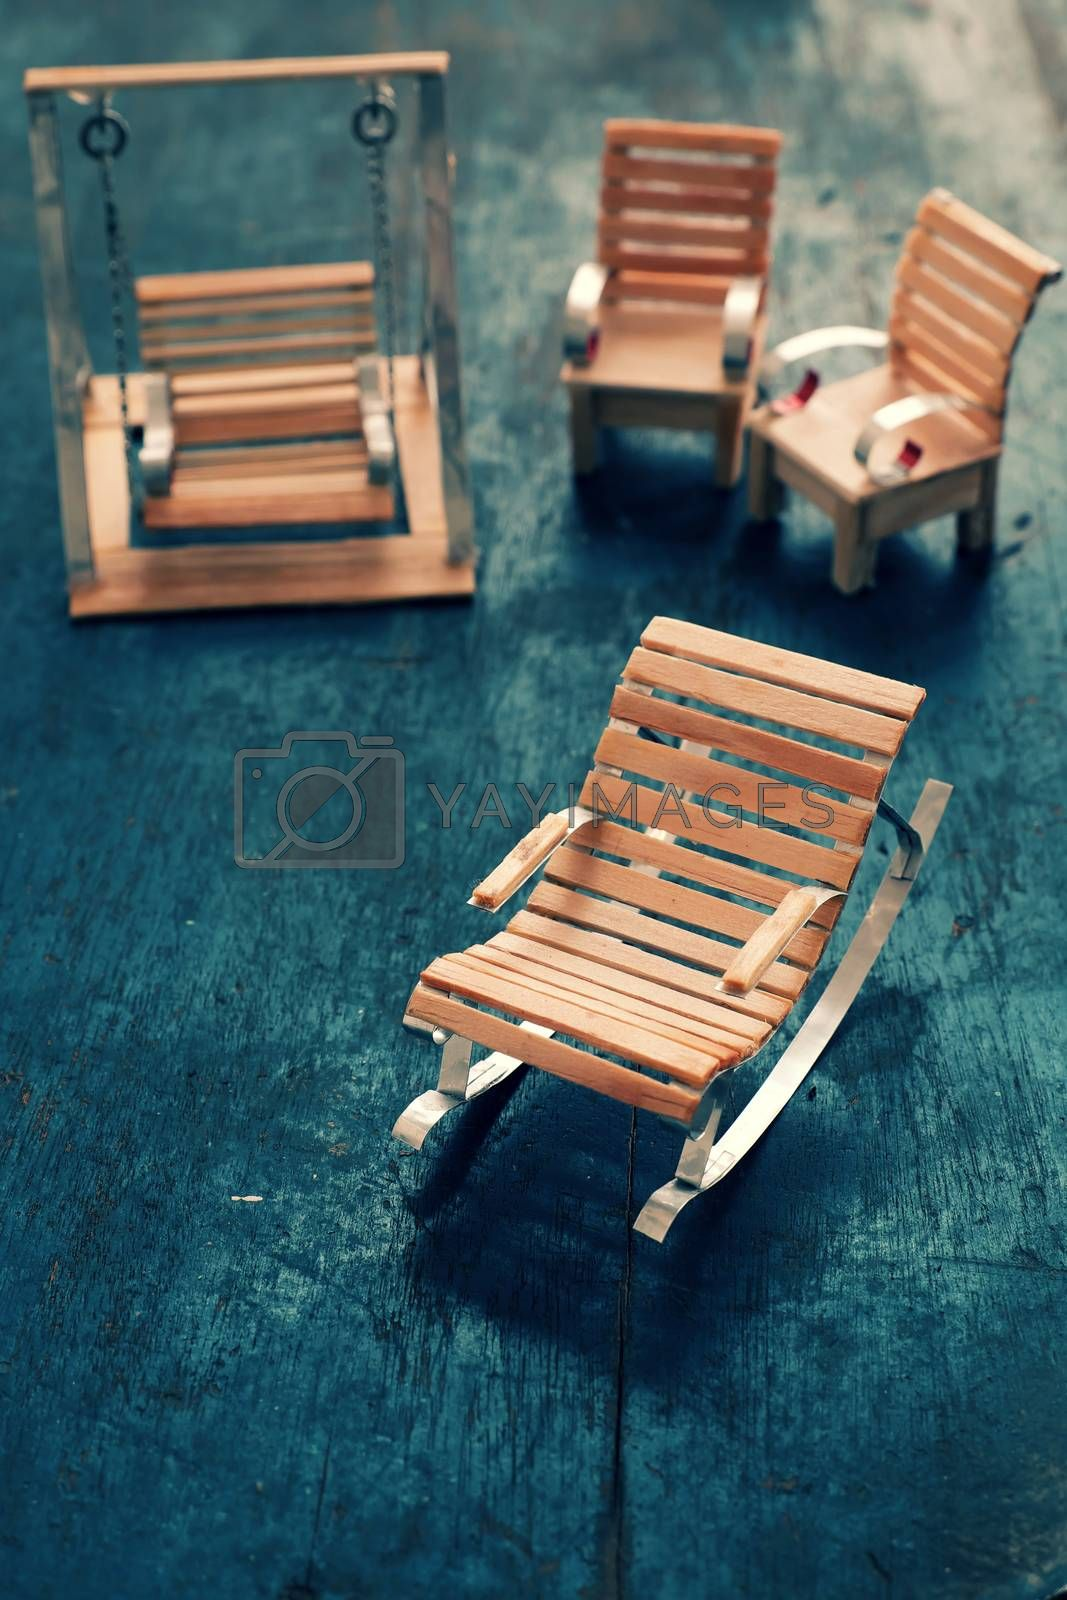 Amazing miniature handmade product for interior design, mini furniture make from wood stick on wooden background, small chair so cute, a hobby leisure